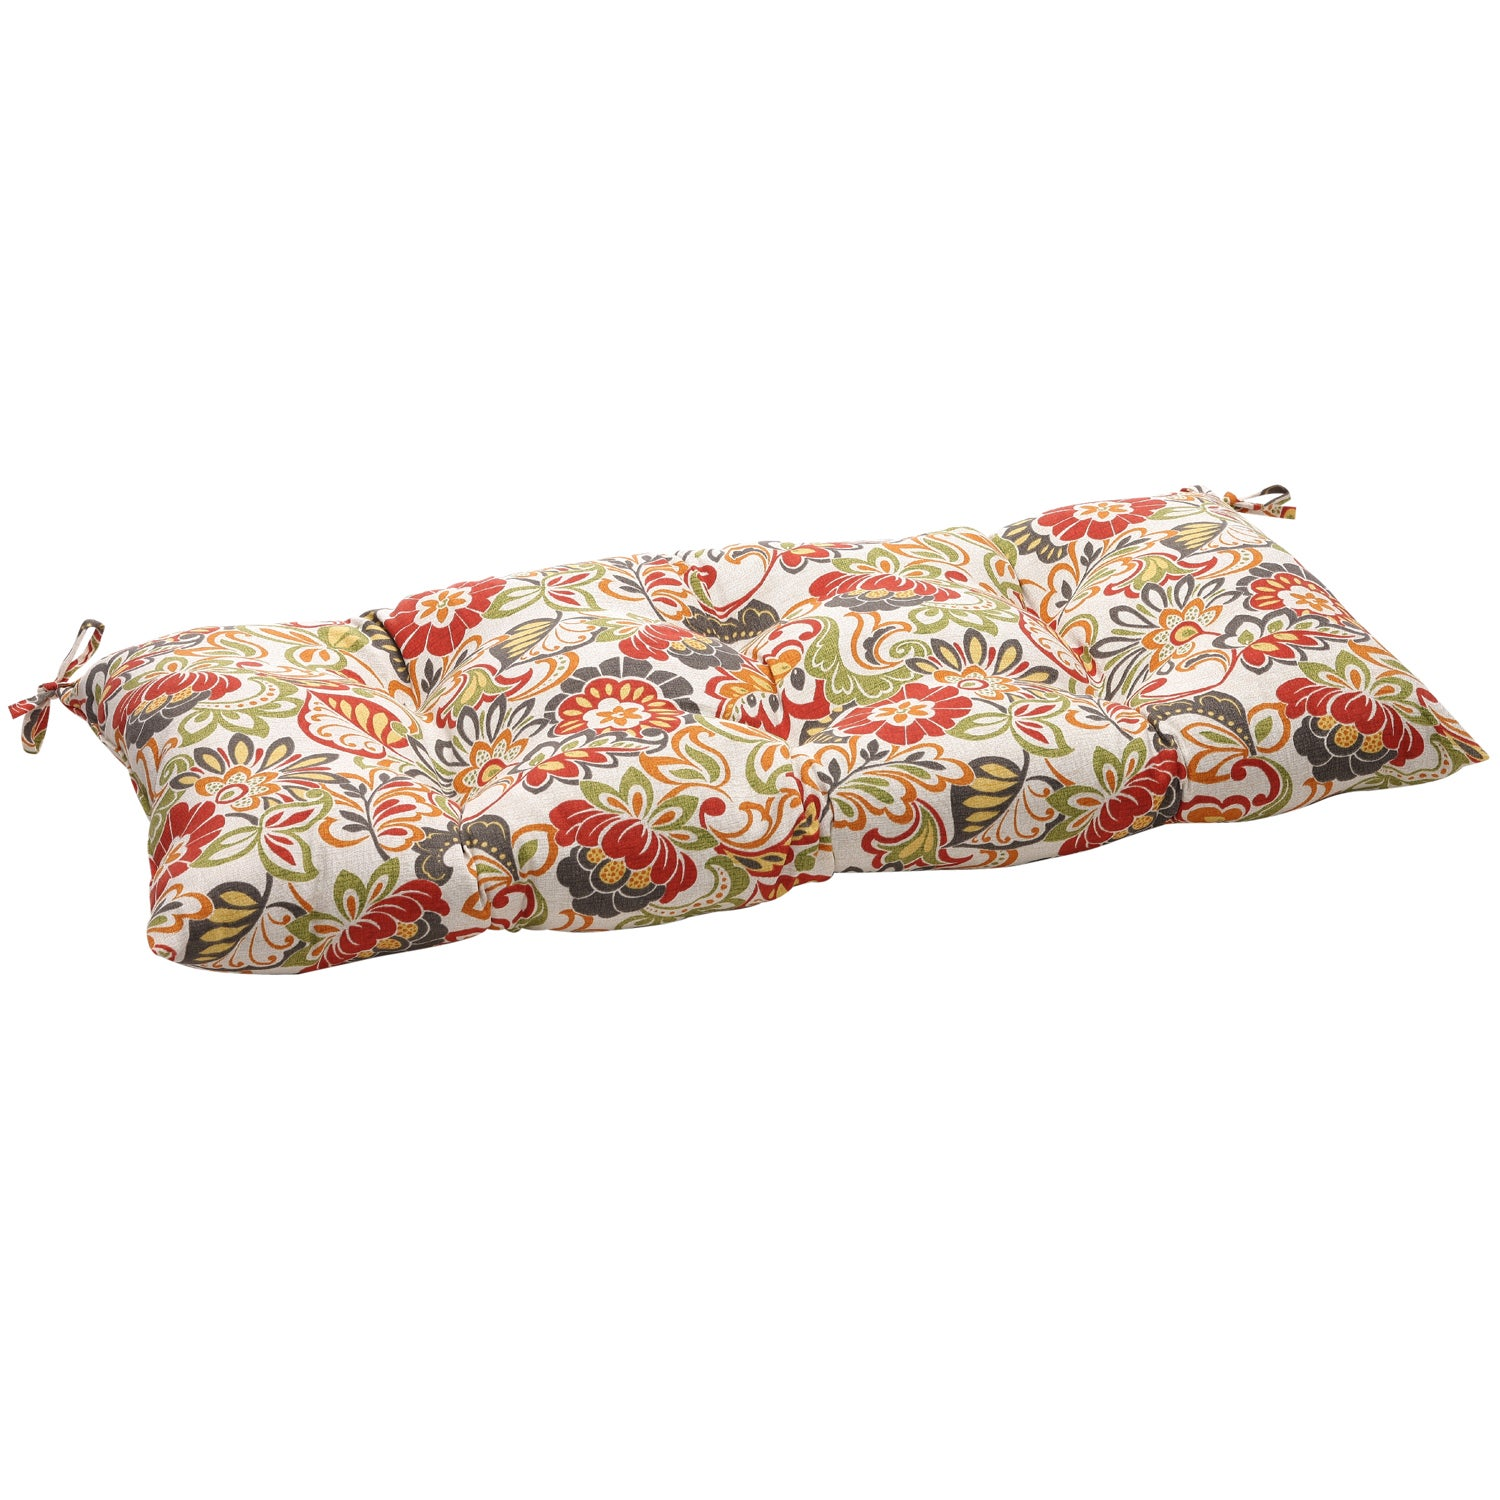 Multicolored Floral Outdoor Tufted Loveseat Cushion